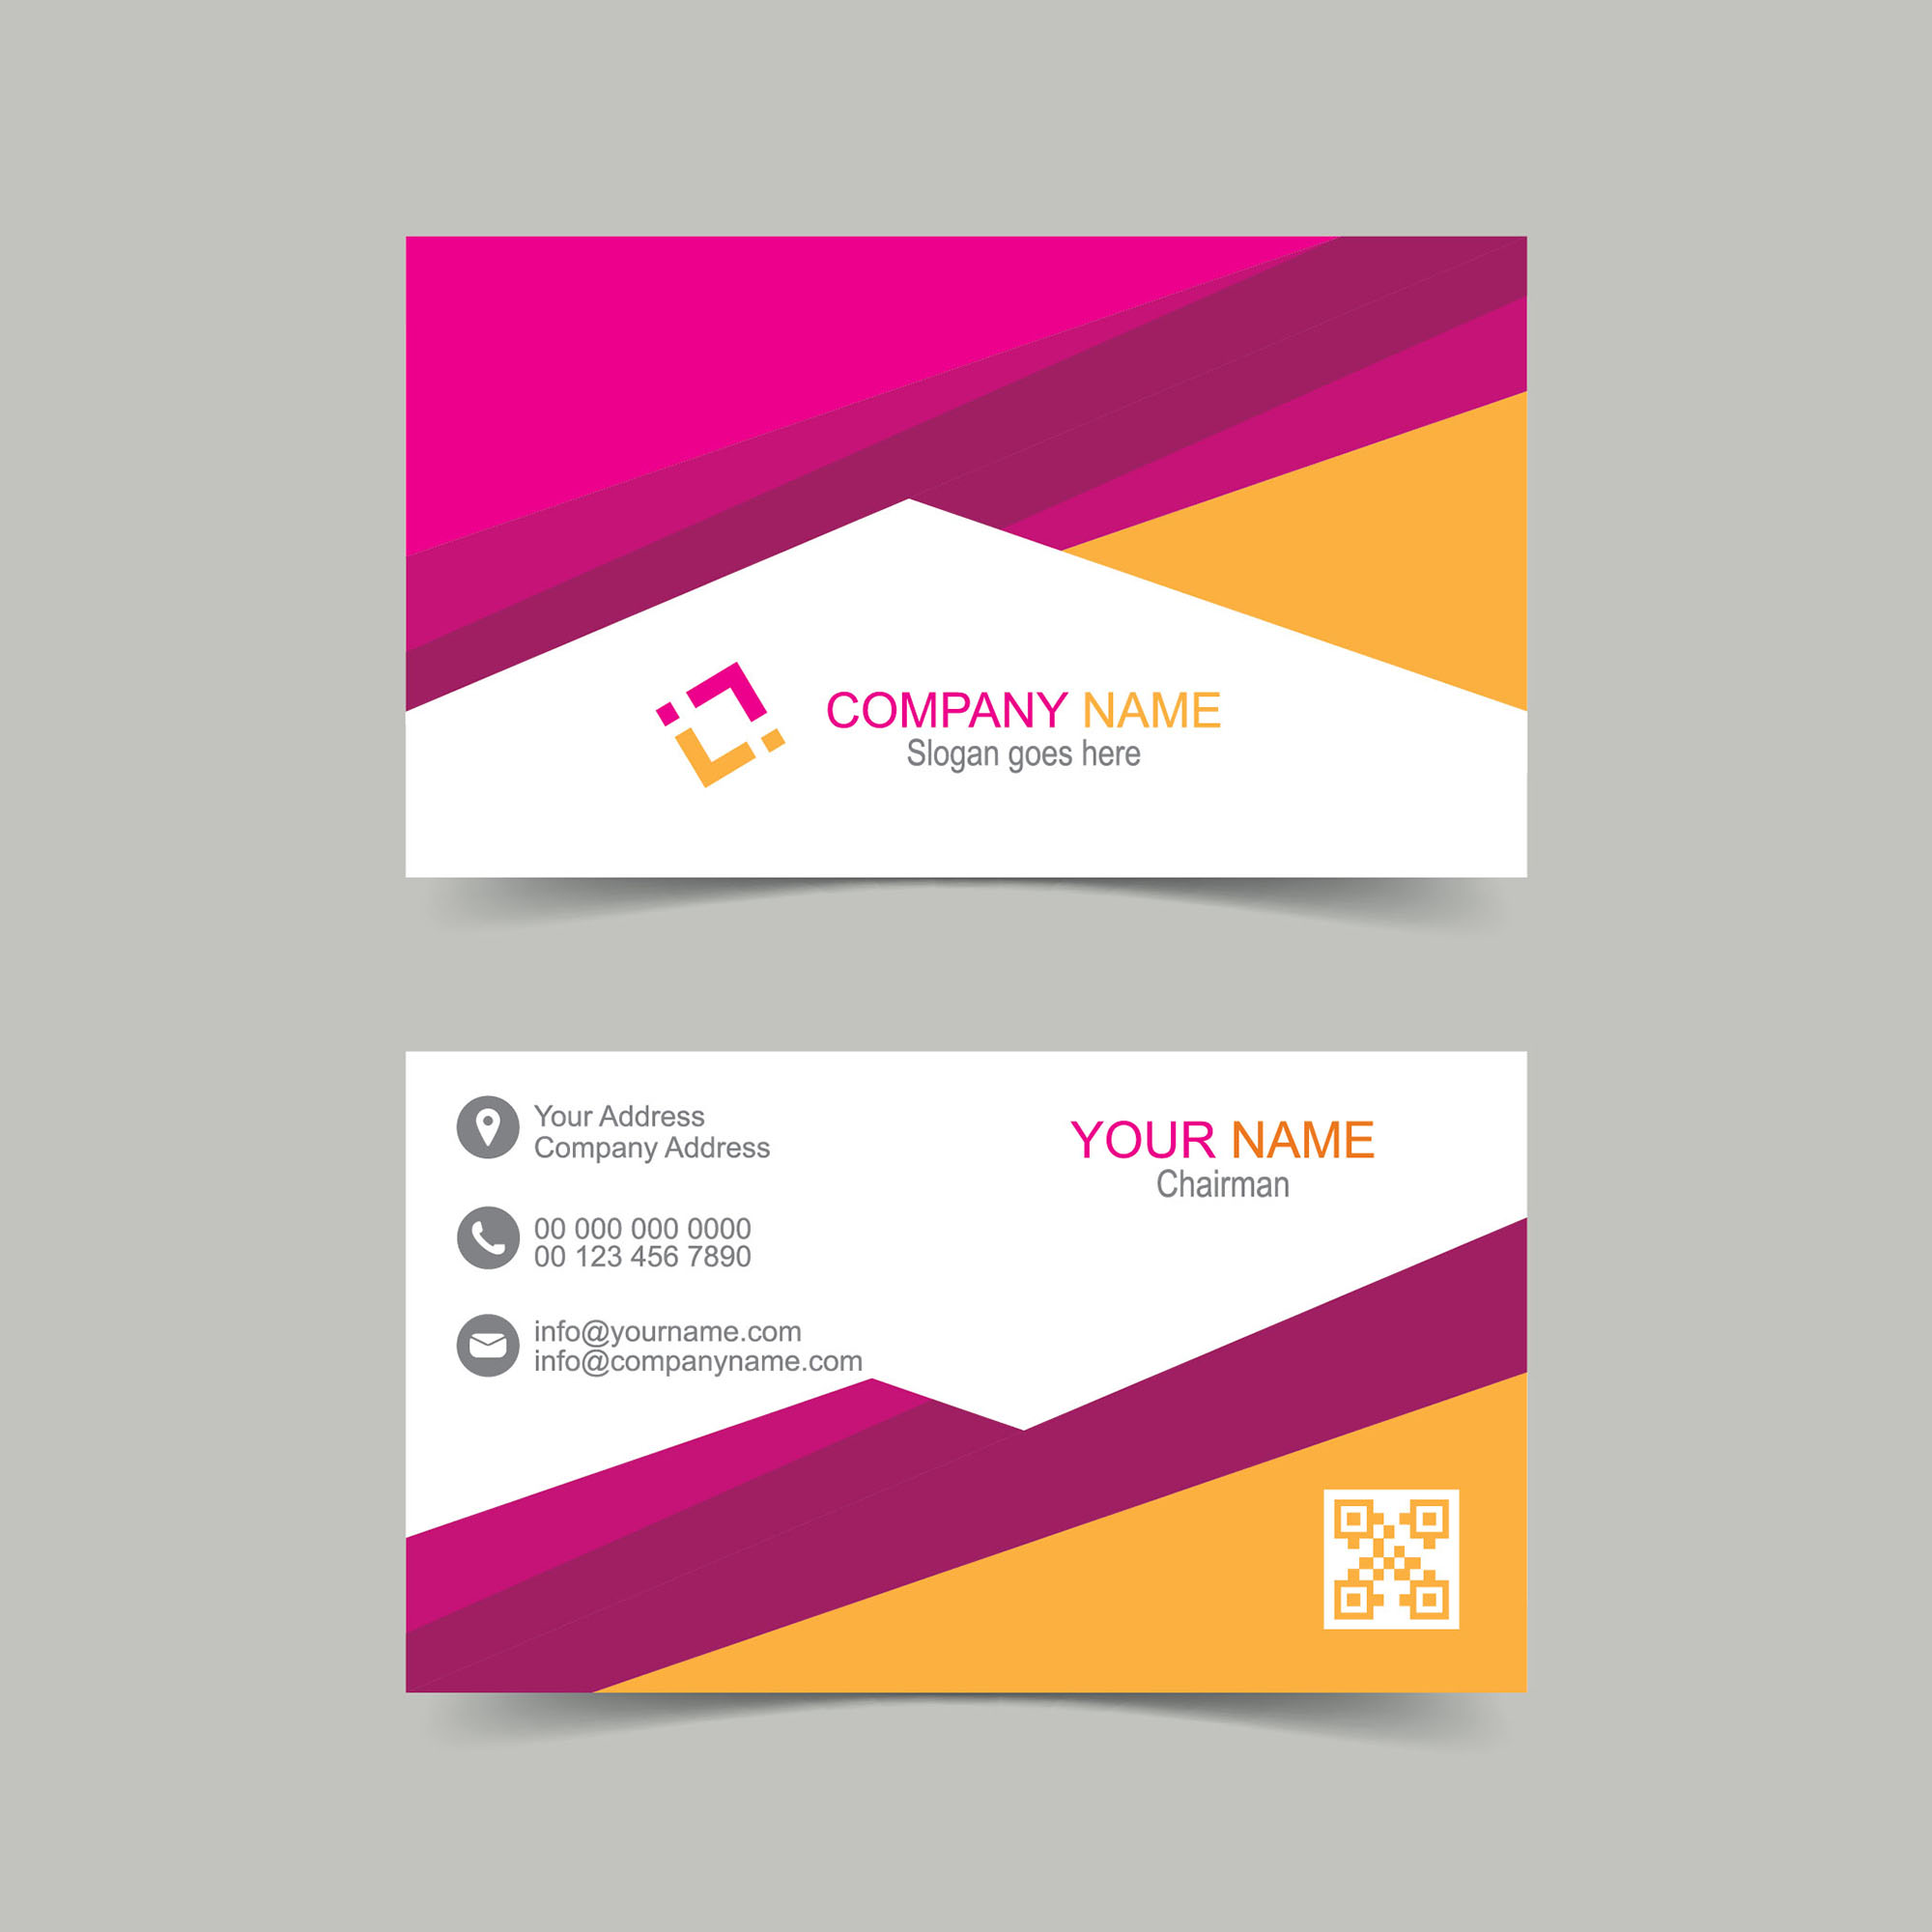 Vector business card design free download wisxi business card business cards business card design business card template design templates reheart Image collections